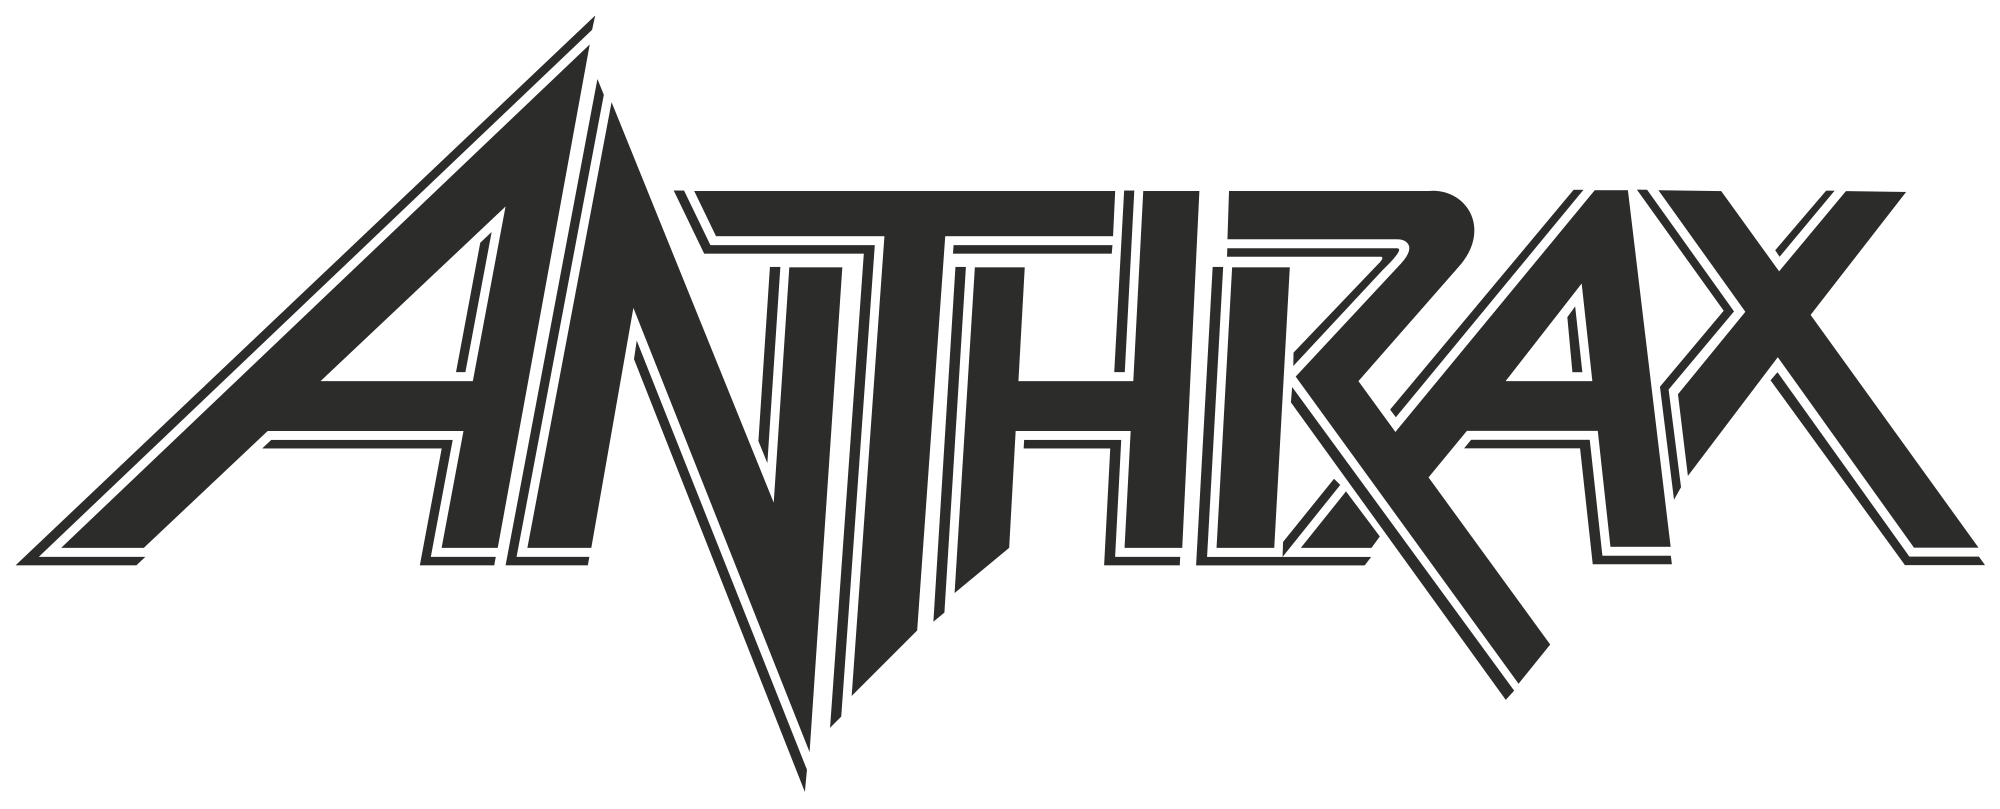 clip library Vector bands background. File anthrax logo svg